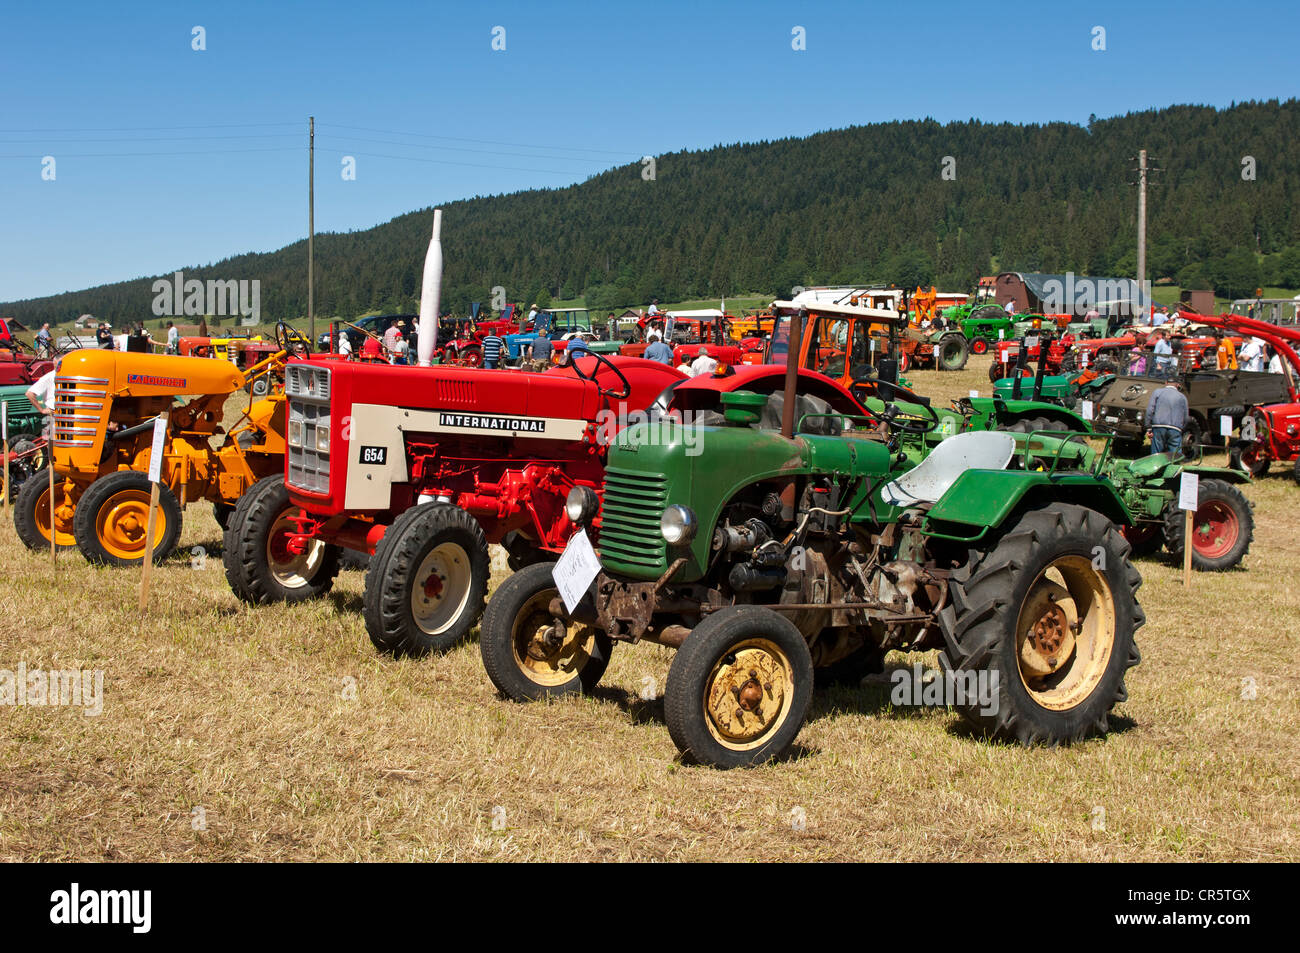 Exhibition of vintage tractors and other farm machinery, Tracto Mania, La Brevine, Neuchâtel Jura, Switzerland, - Stock Image